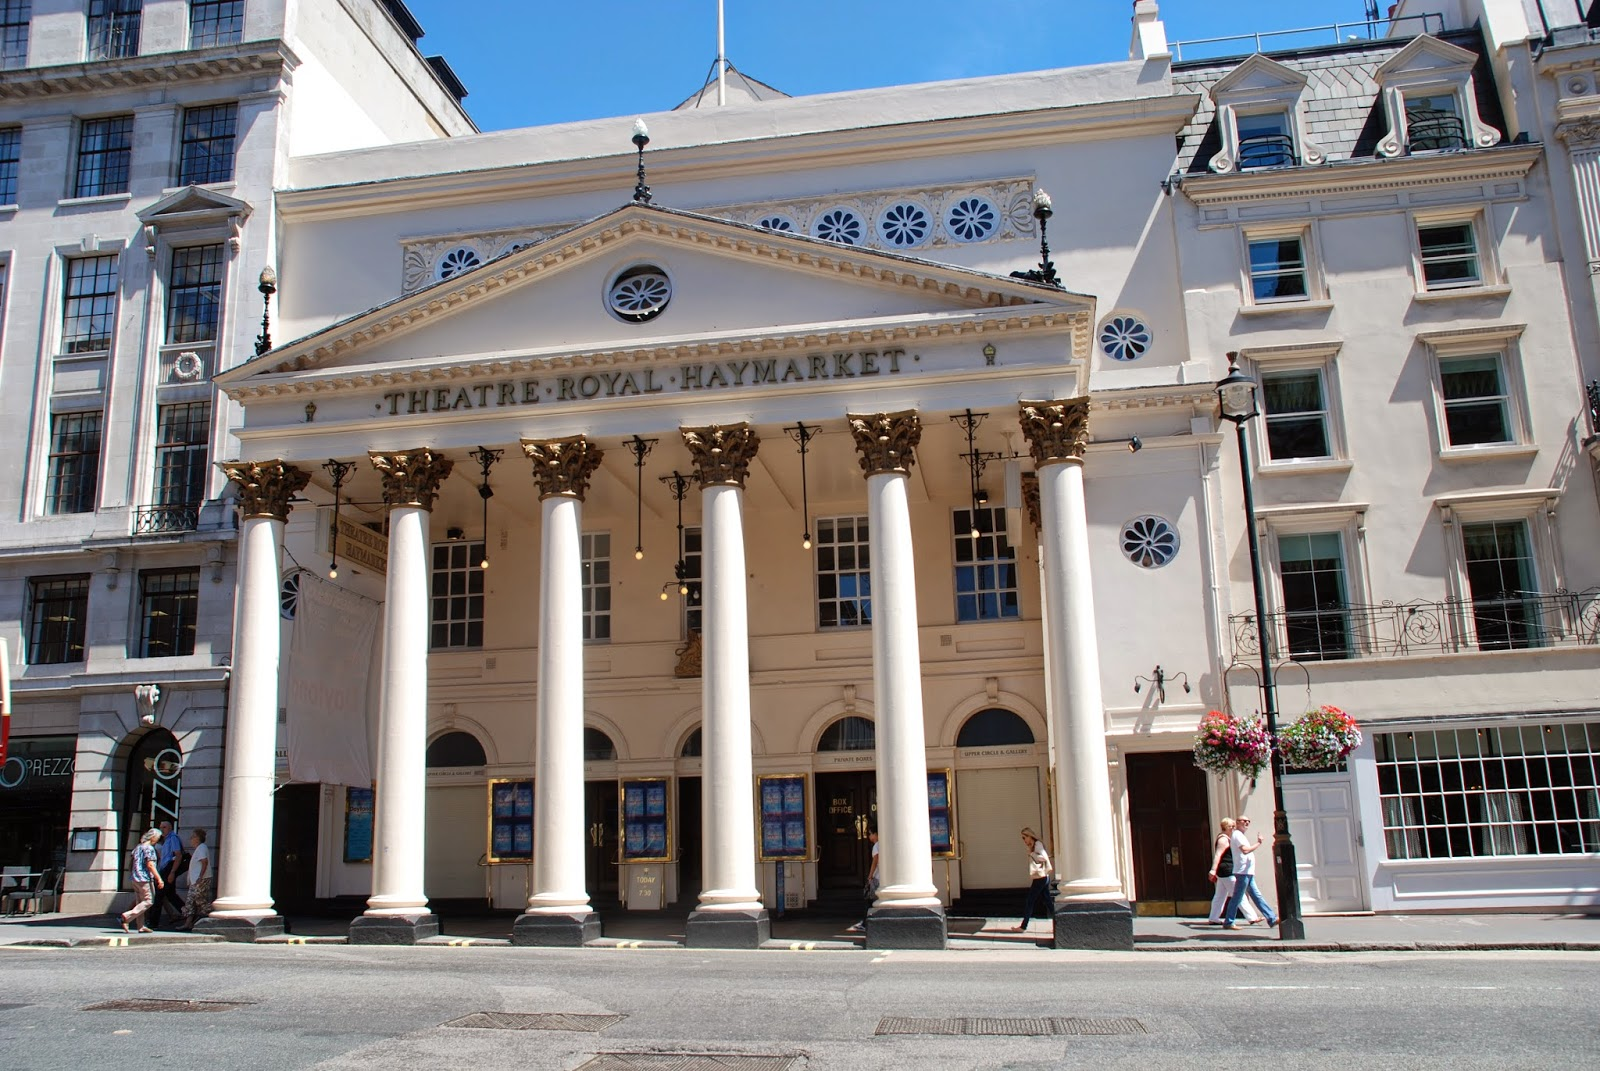 Theatre Royal Haymarket, London